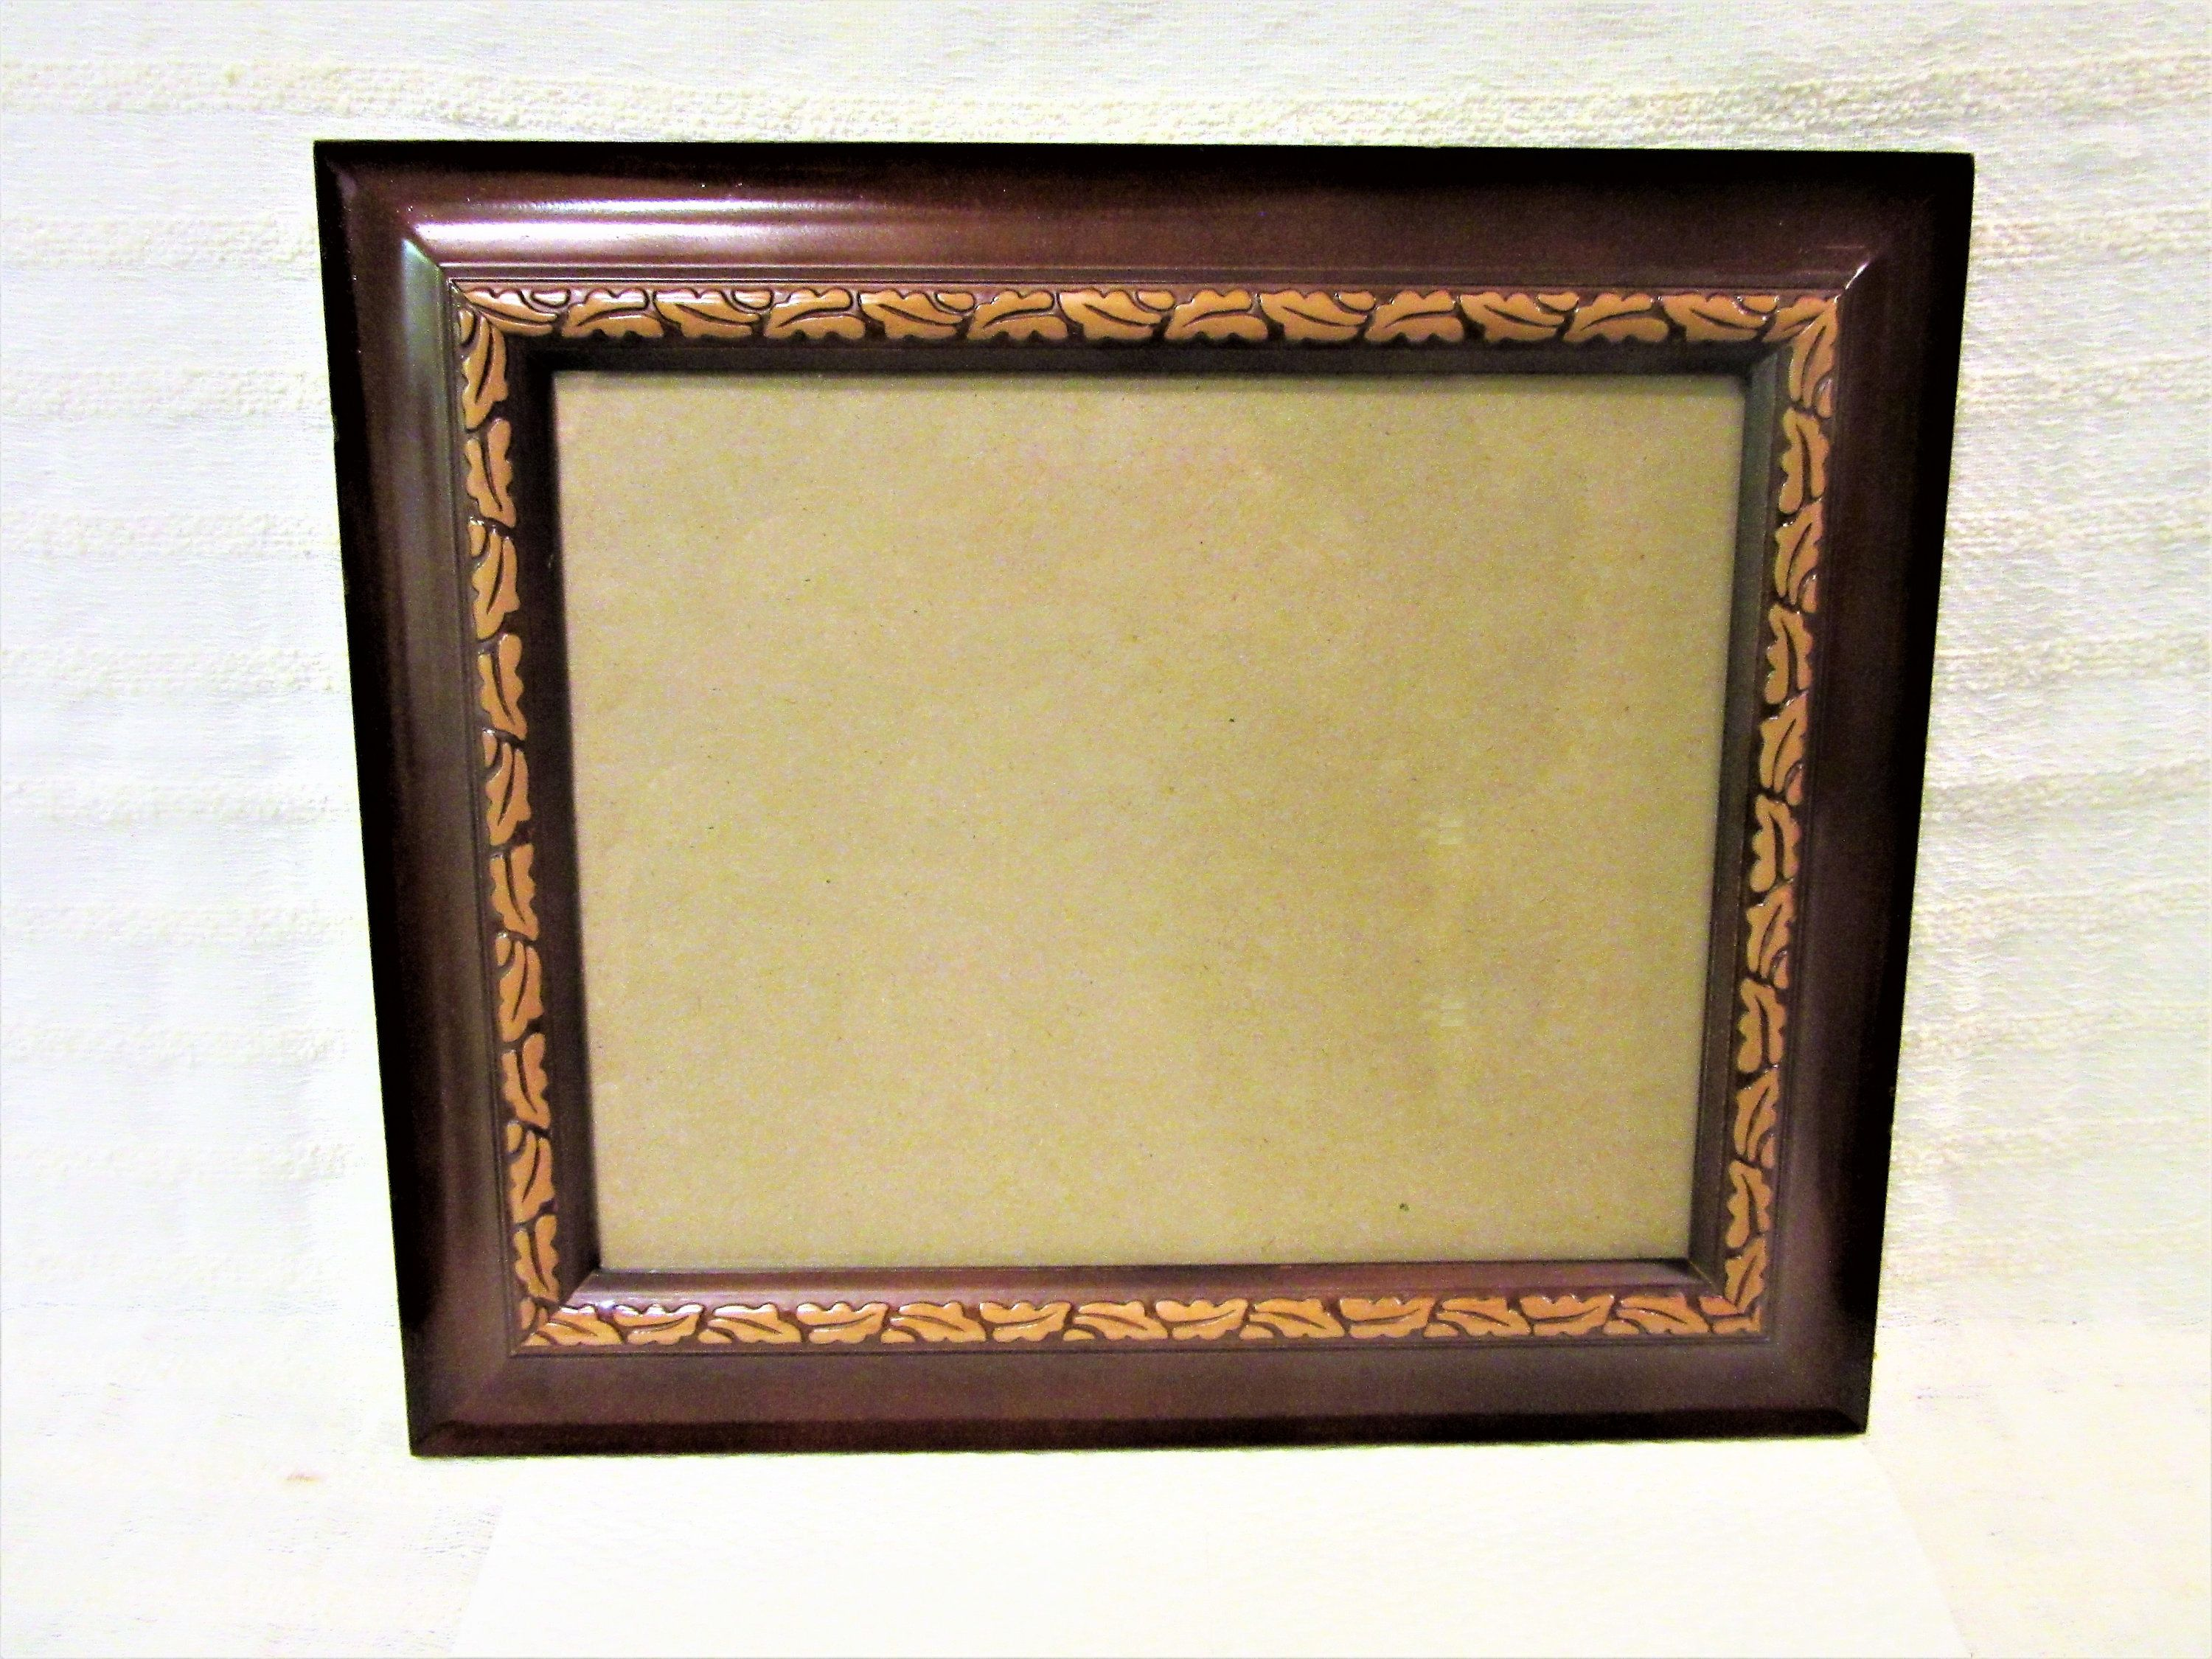 Wood Photo Frame 8 x 10 Carved Ornate Design Wall Decor Hanging ...